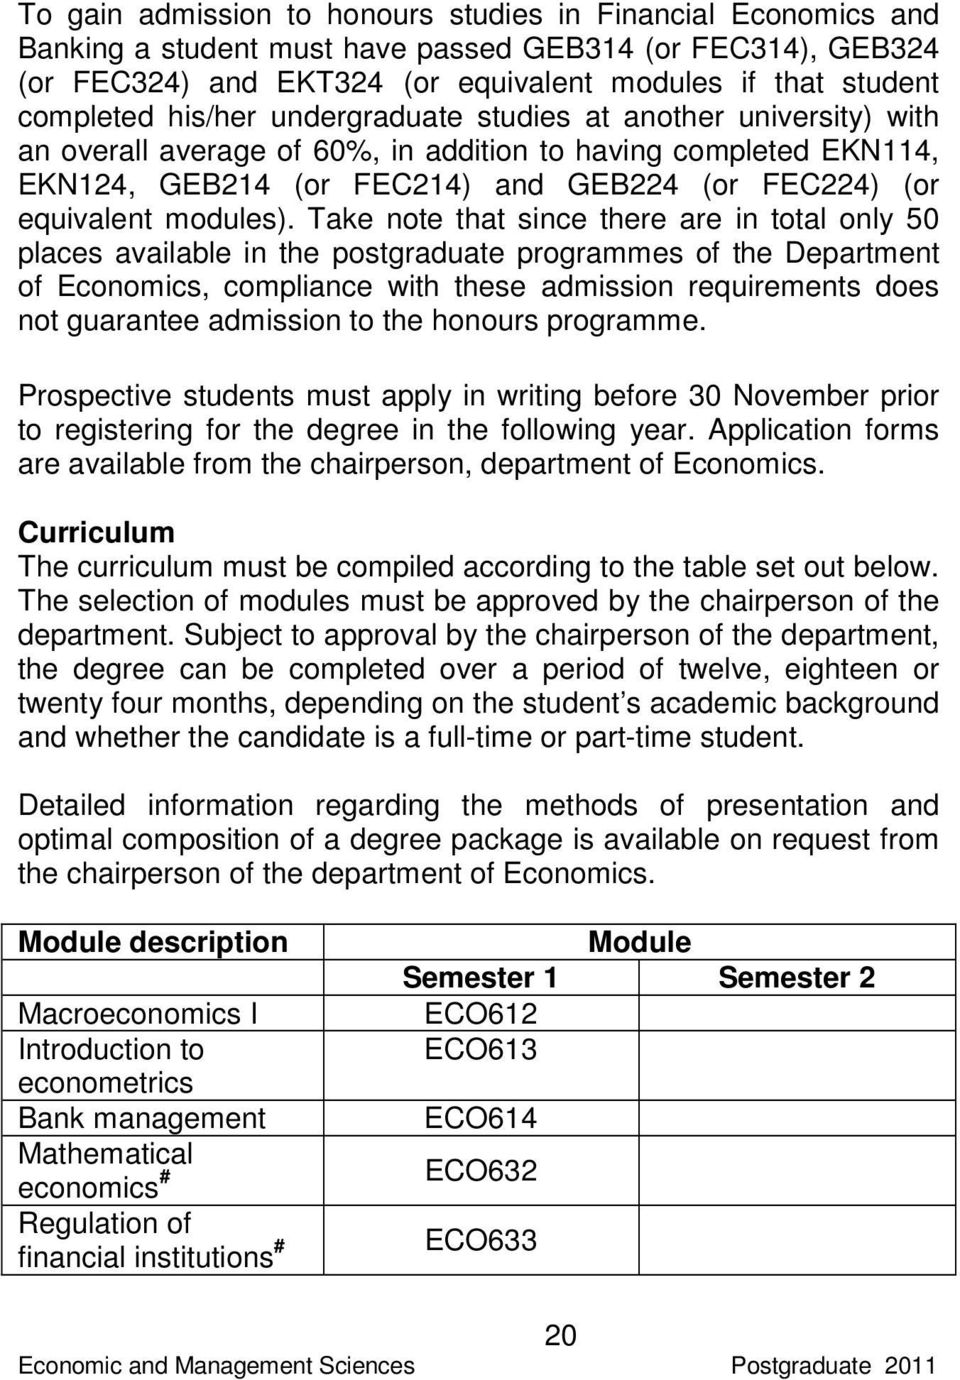 Take note that since there are in total only 50 places available in the postgraduate programmes of the Department of Economics, compliance with these admission requirements does not guarantee